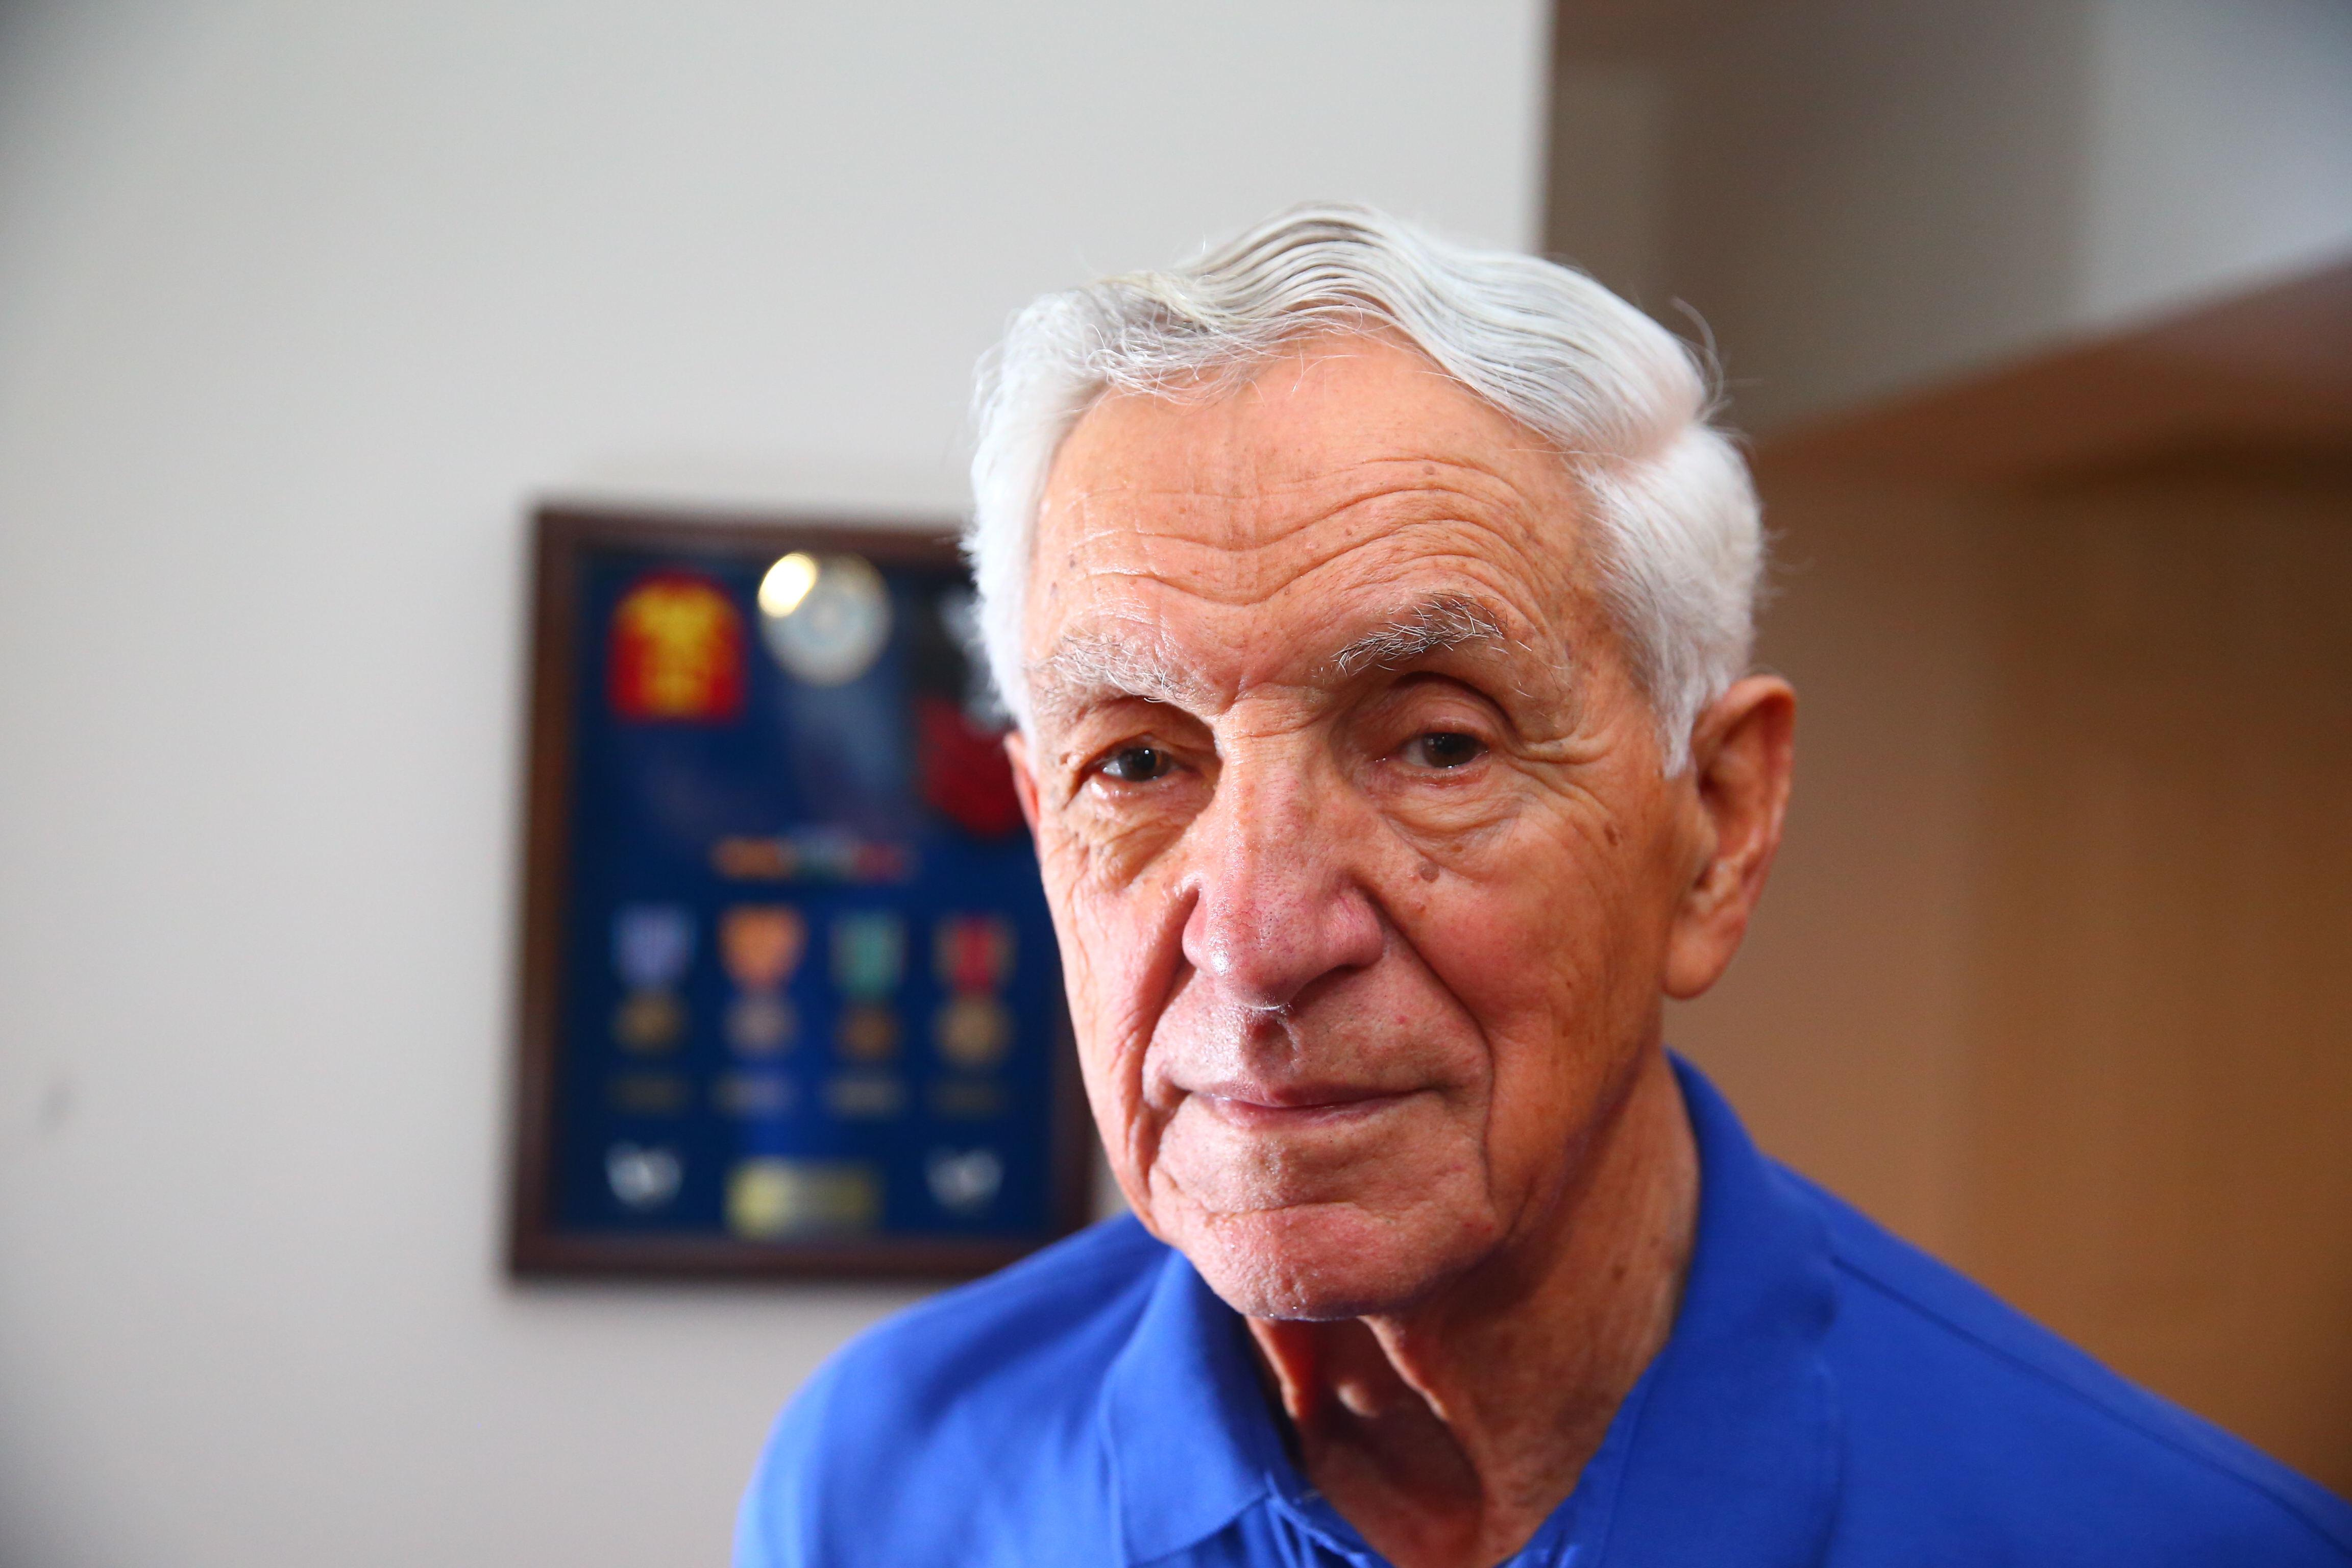 WWII Coast Guard vet Gregory Sanchez served aboard the USS Cepheus. He enlisted because he wanted to take a stand against Hitler. (John Hickey/Buffalo News)